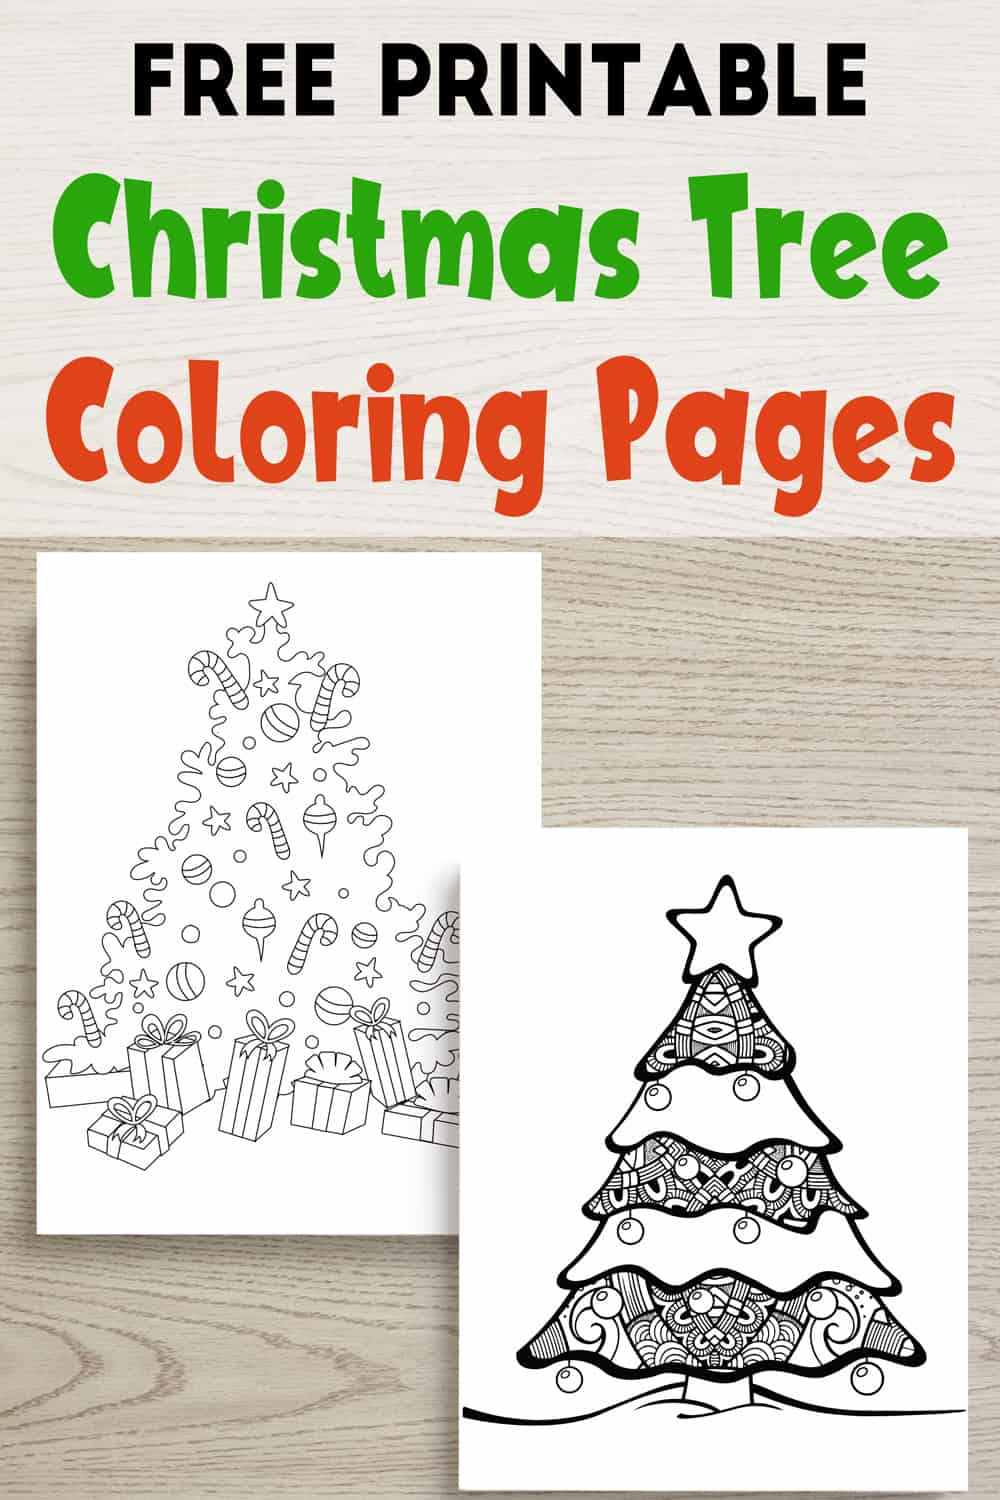 picture regarding Free Printable Christmas Tree identified as Absolutely free Printable Xmas Tree Coloring Internet pages - The Artisan Everyday living